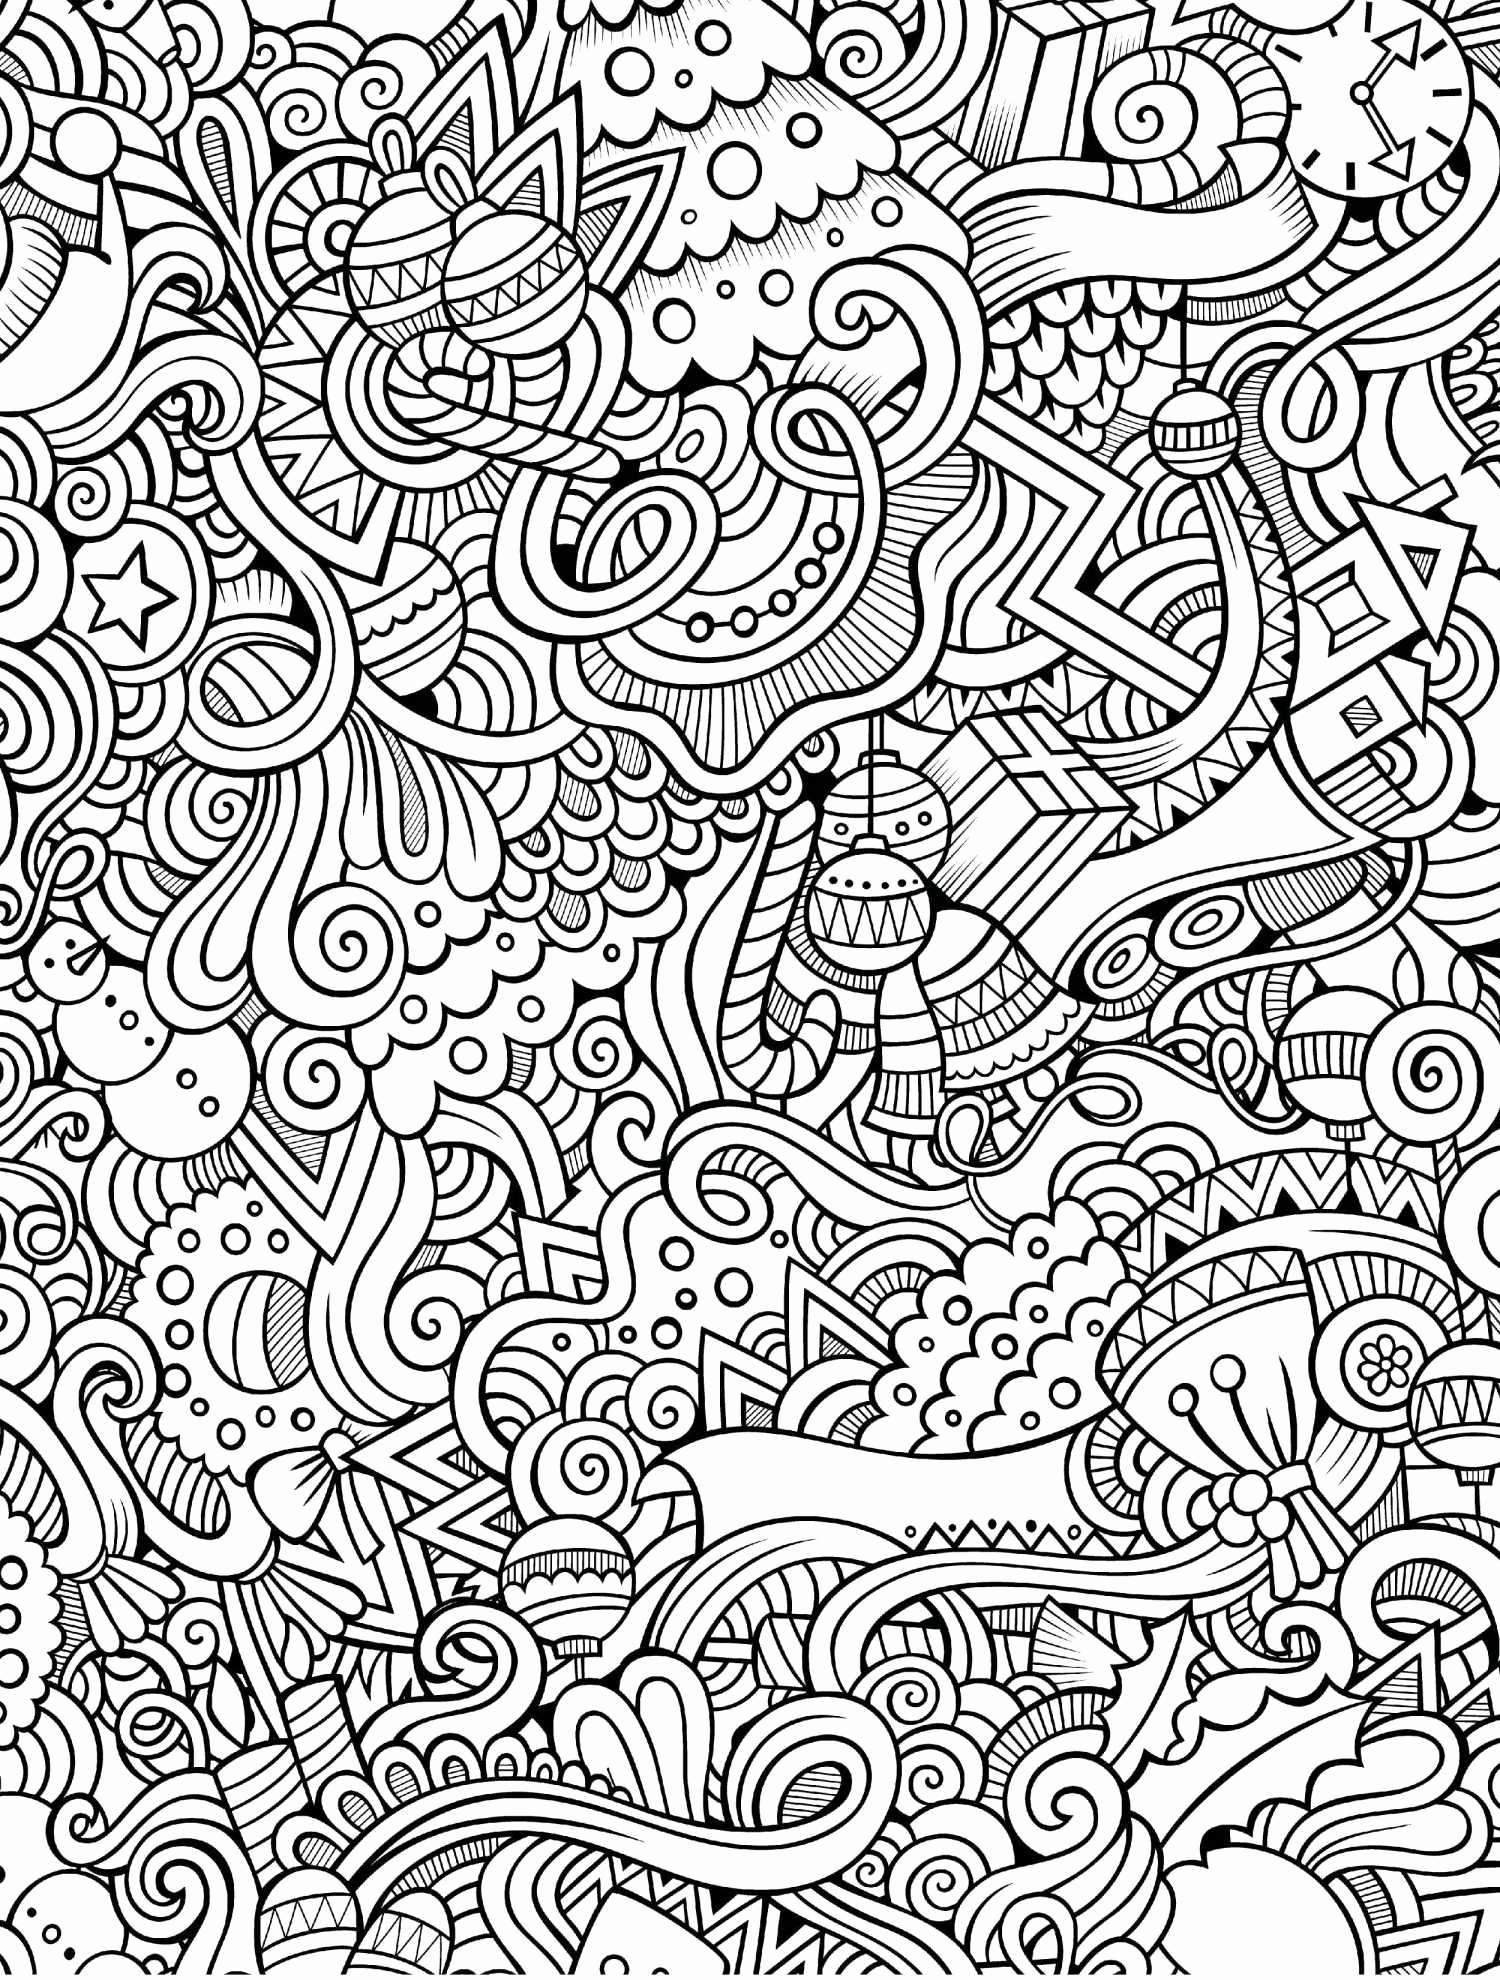 Doodle Coloring Pages Free Printable Zentangle Coloring ...